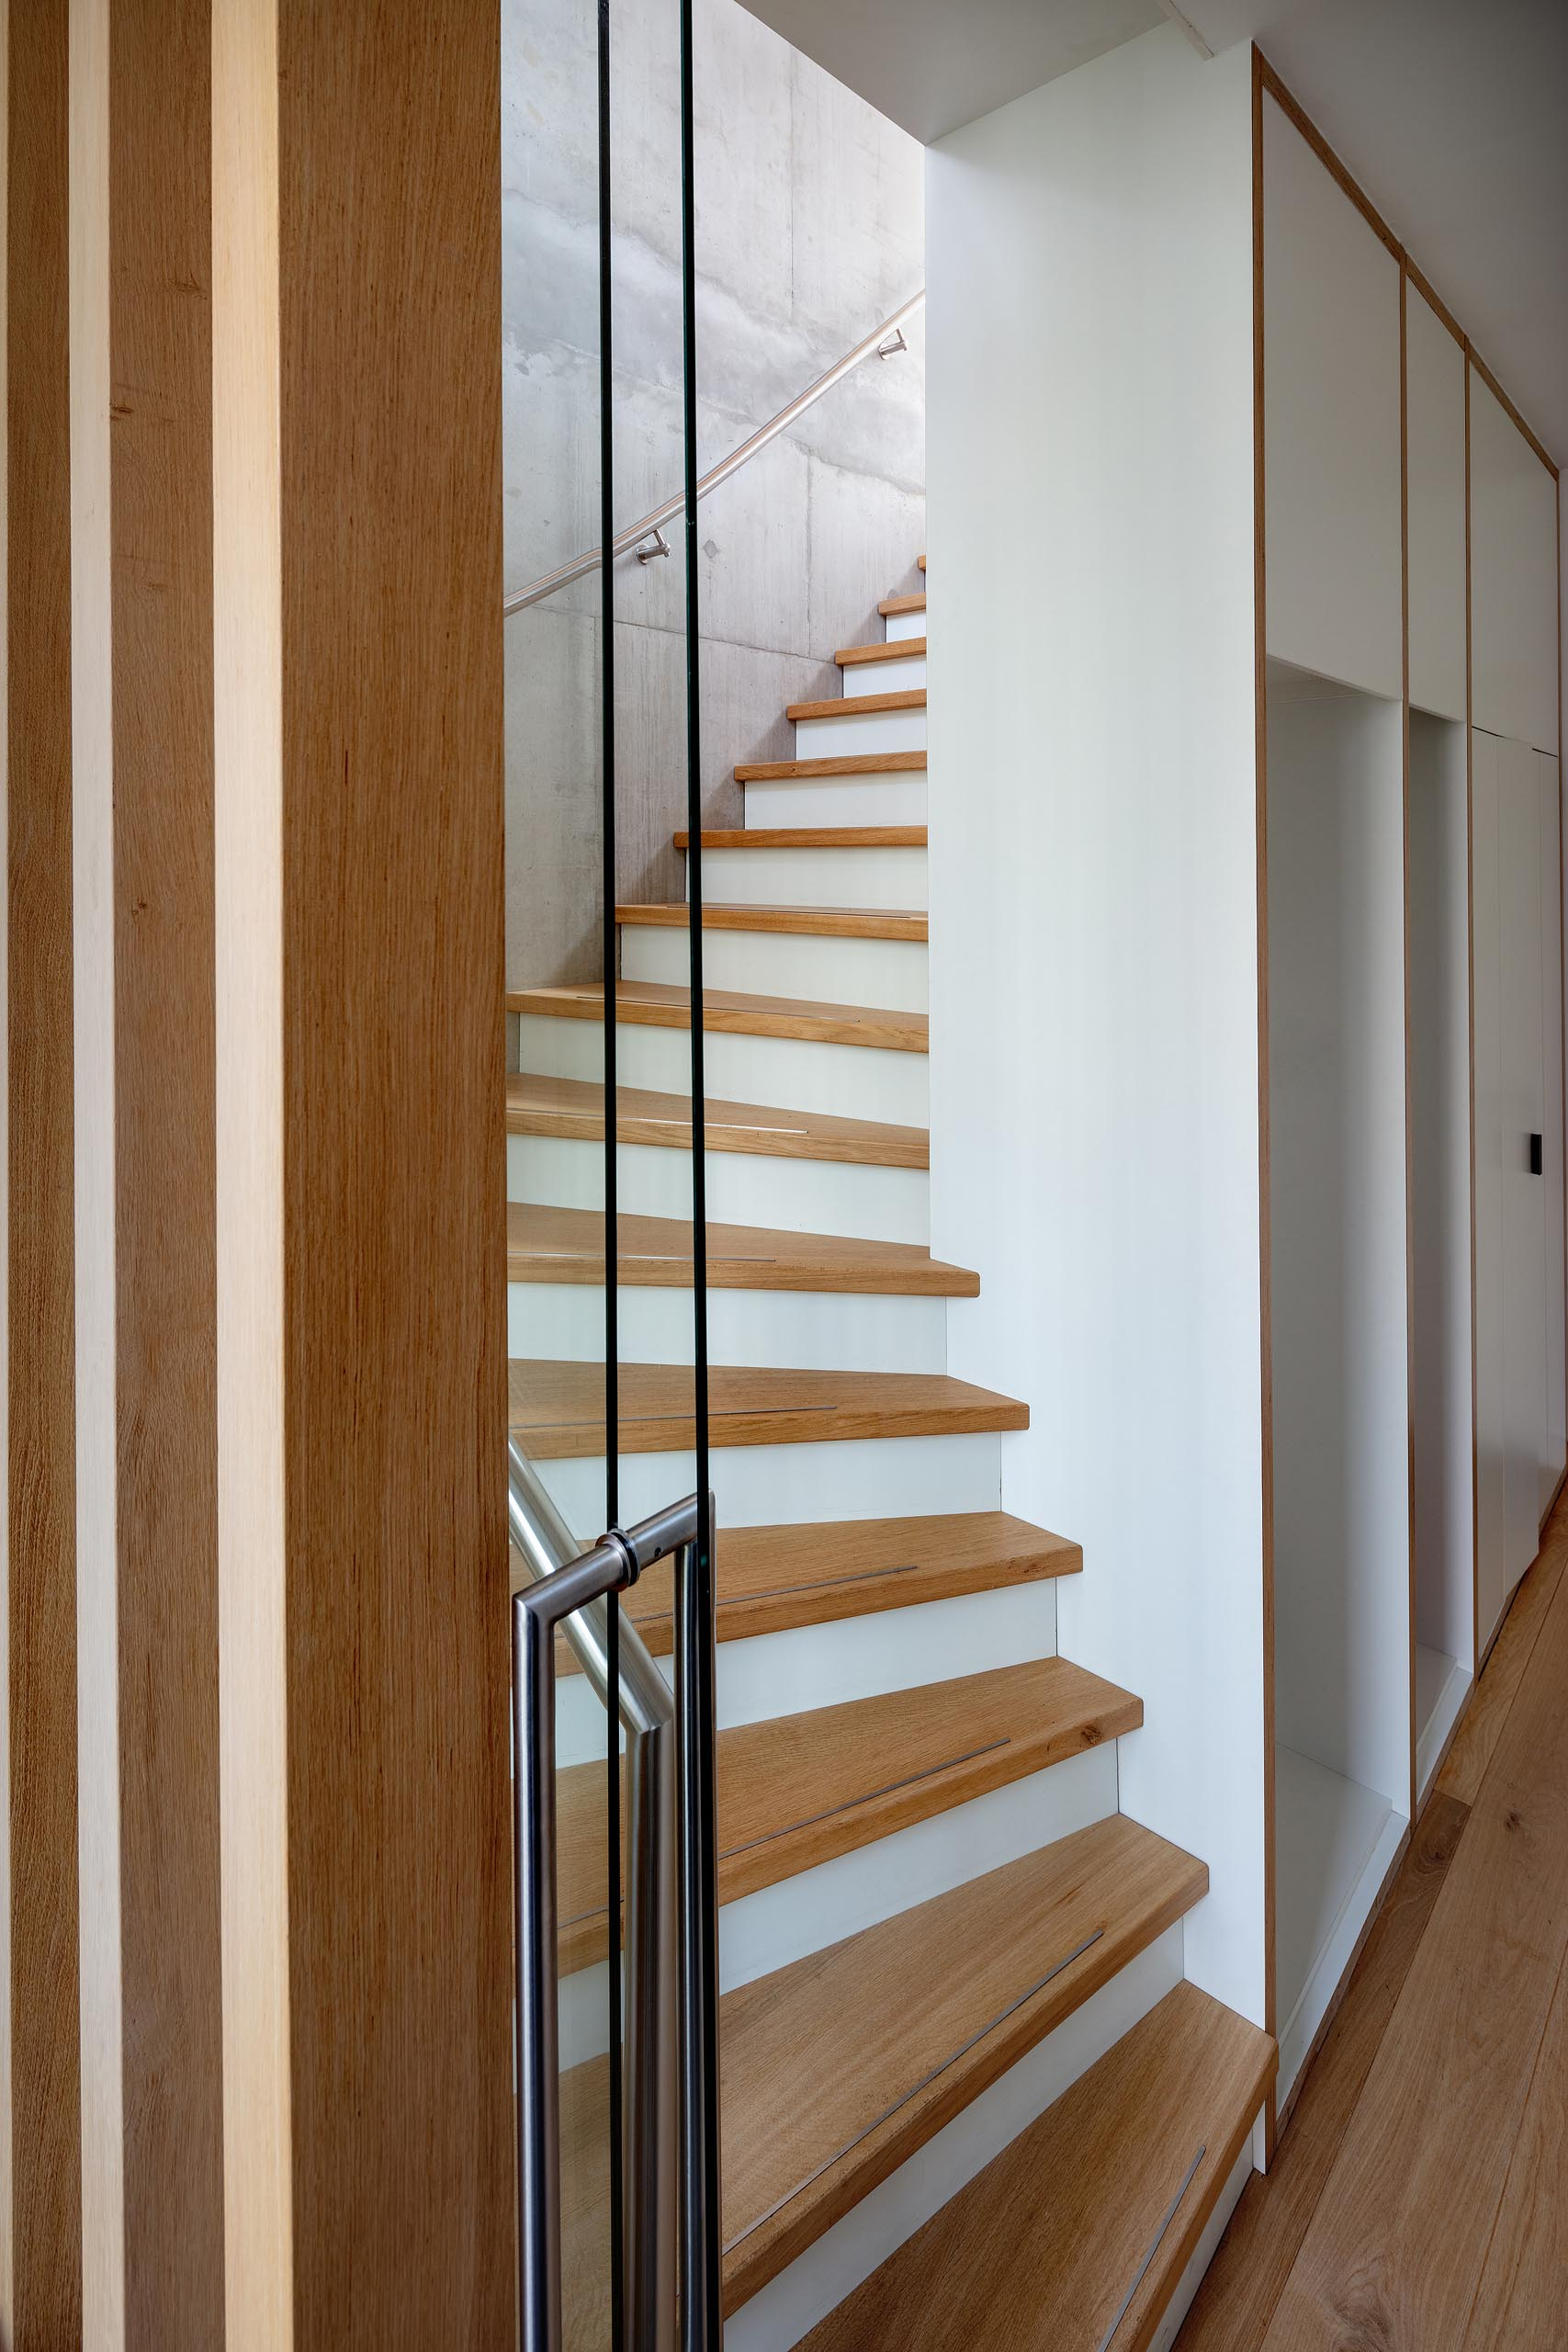 A wood and white staircase.